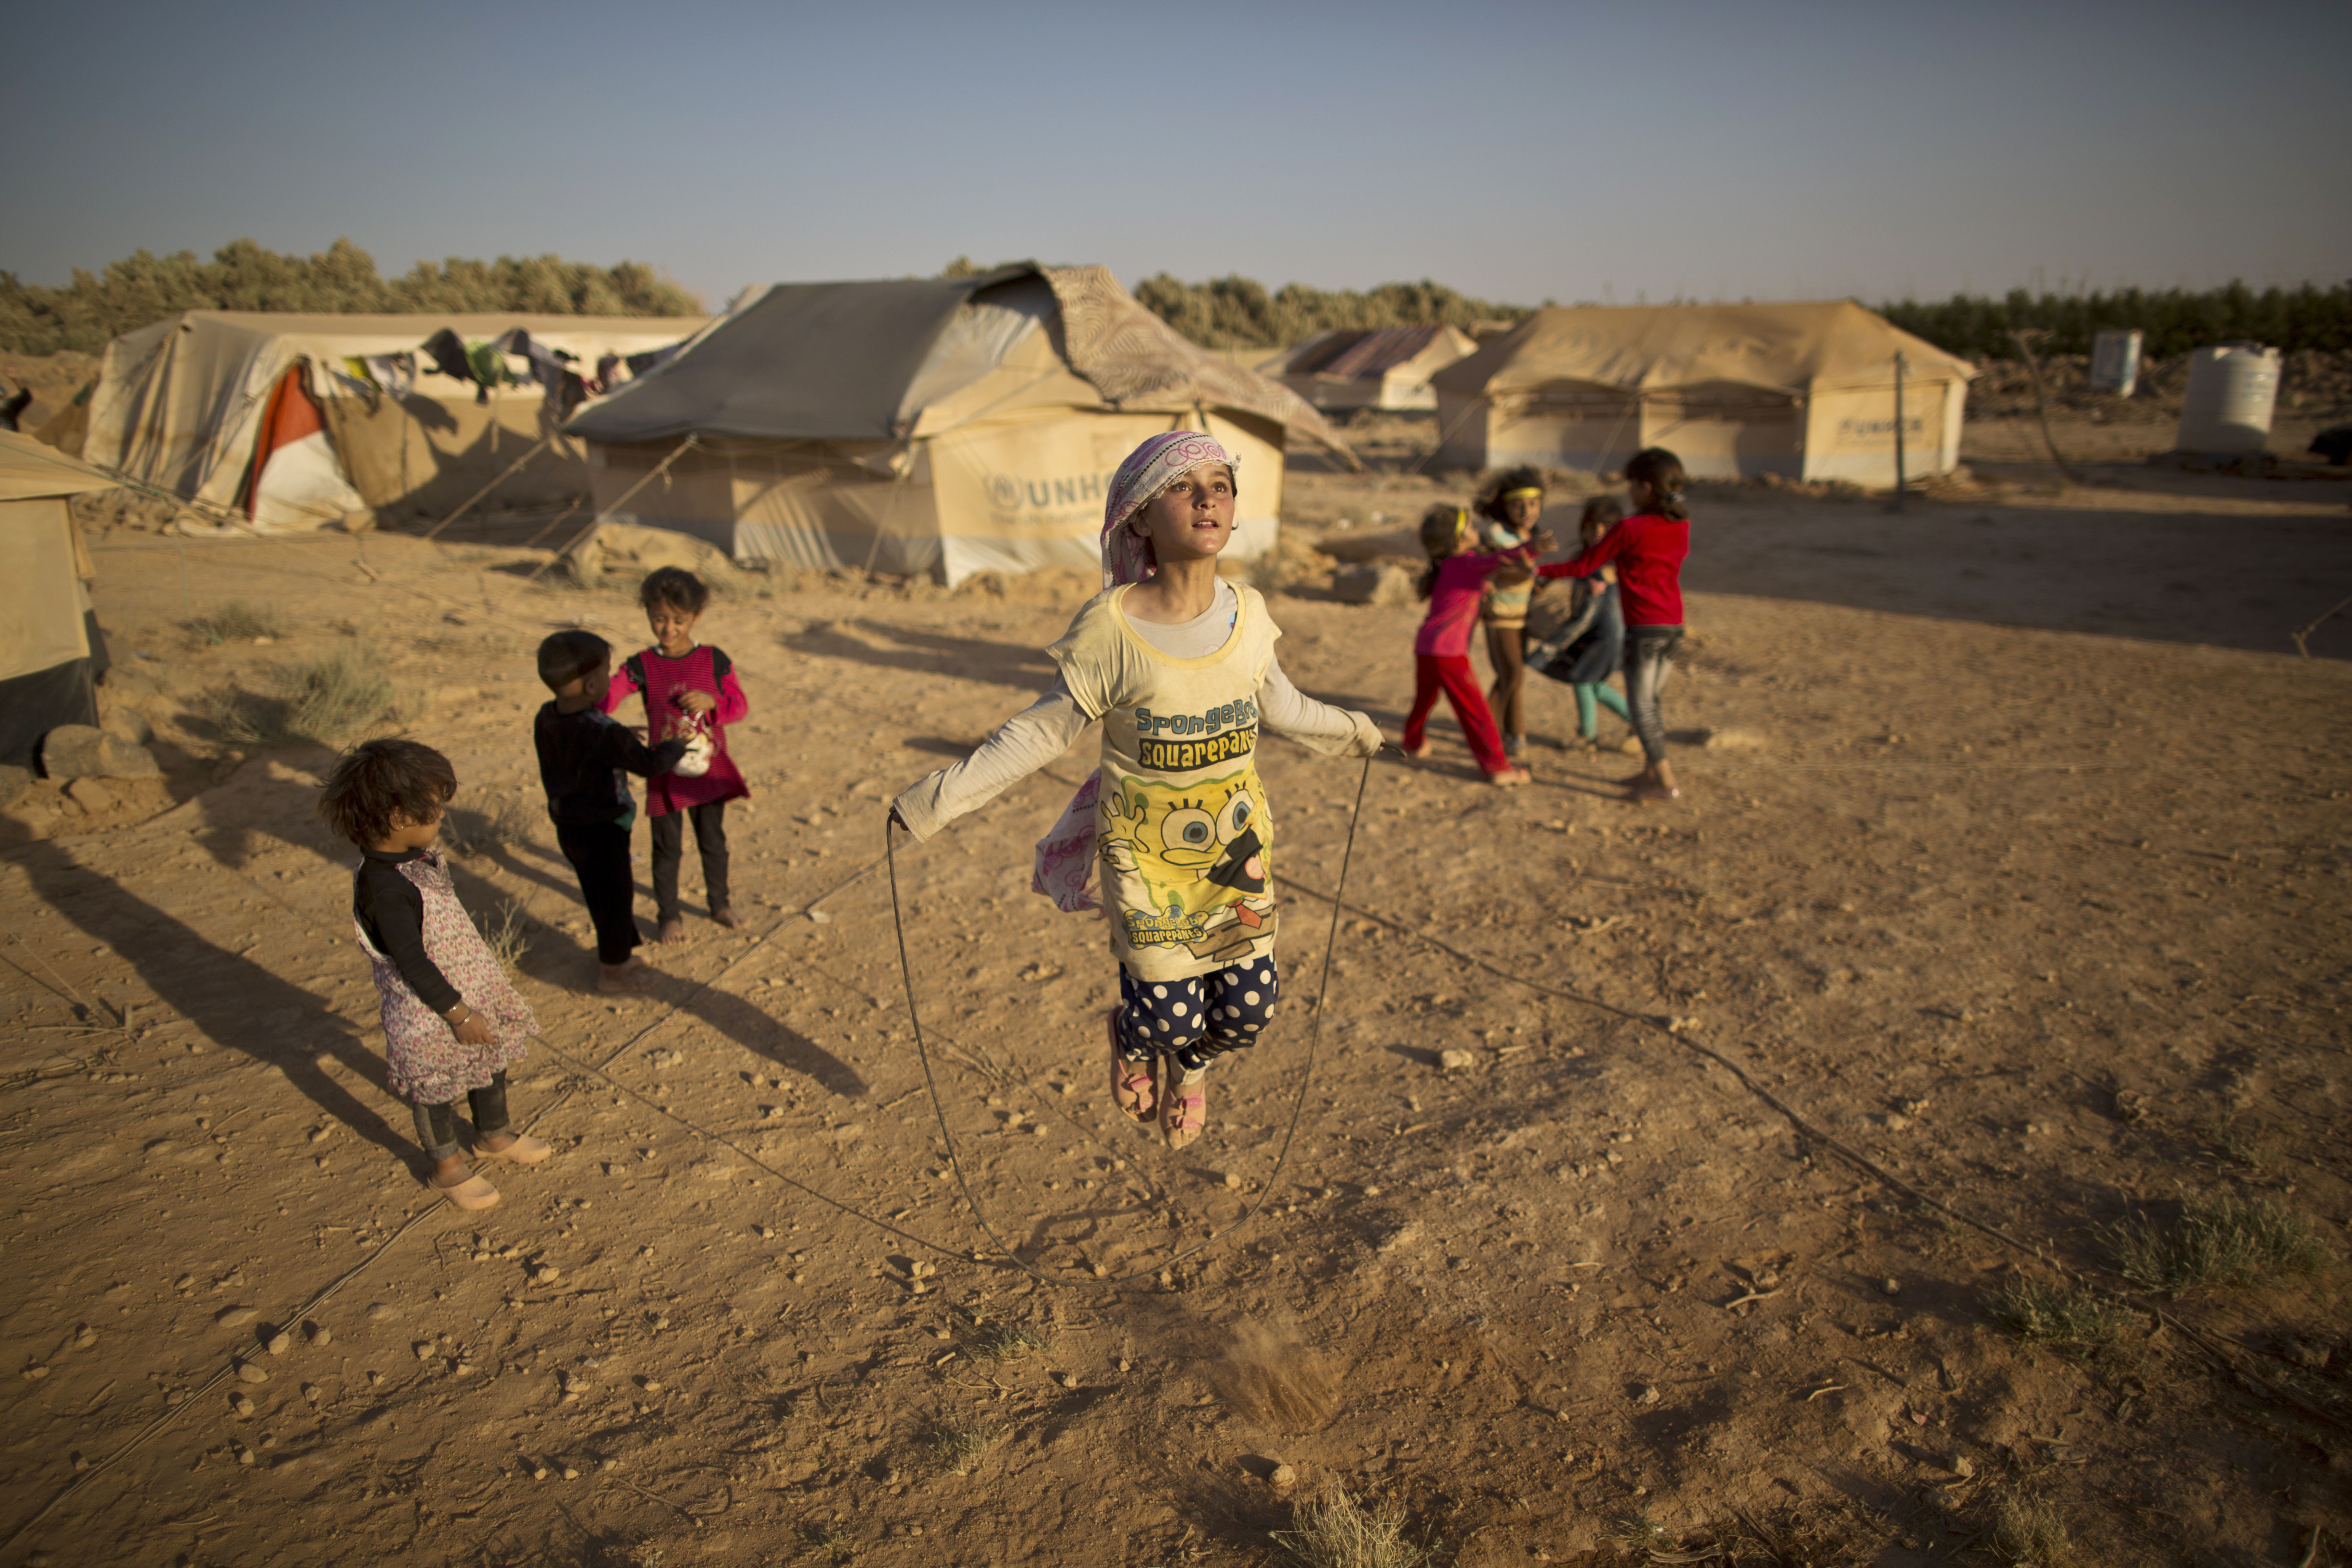 A Syrian girl skips a rope while she and other children play near their tents at an informal tented settlement near the Syrian border on the outskirts of Mafraq, Jordan, July 19, 2015. This is one of the images that will be on display at Xposure International Photography Festival. (AP Photo/Muhammed Muheisen)